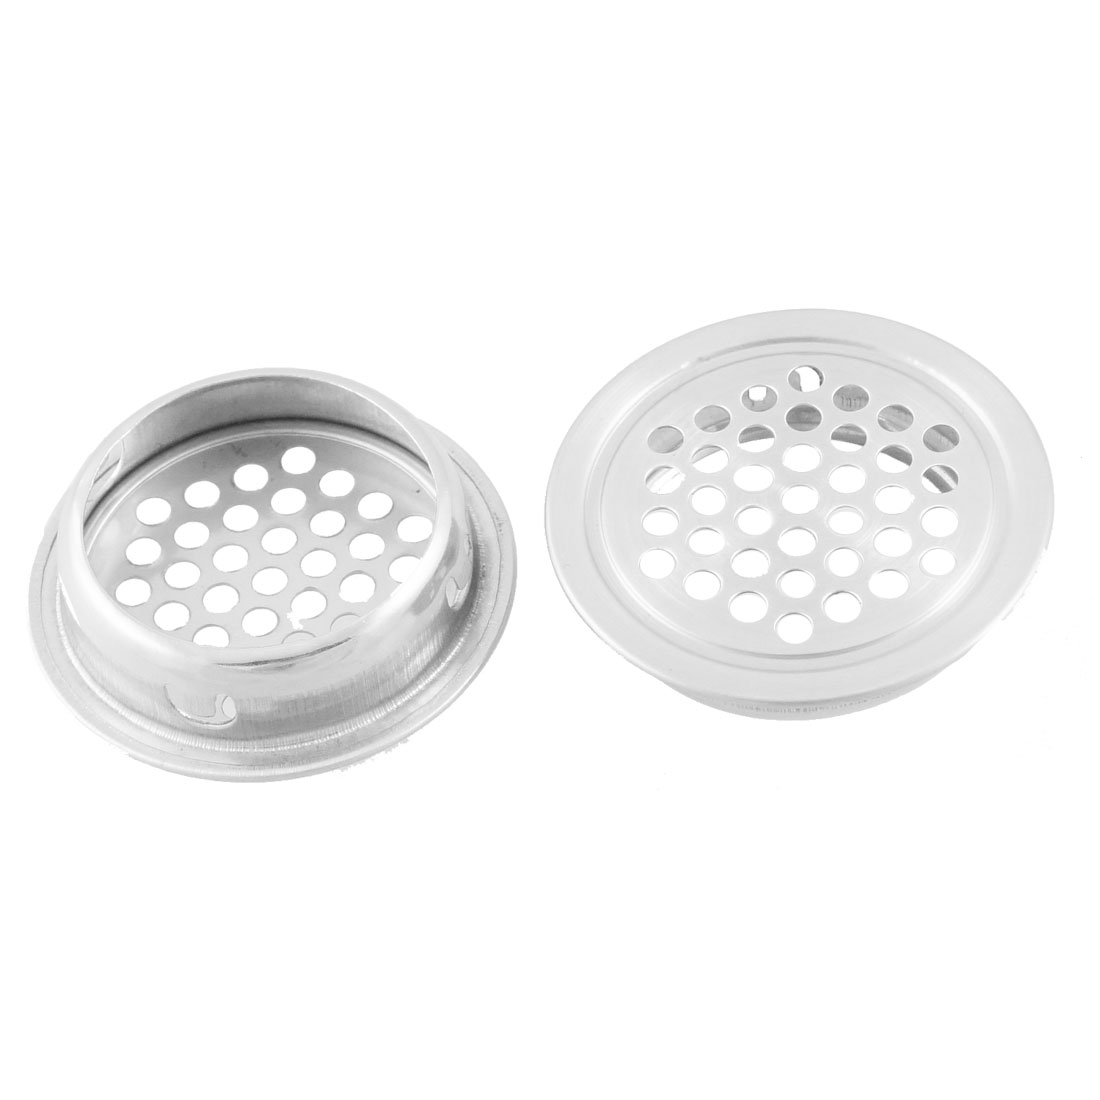 34mm x 42mm Silver Tone Perforated Round Mesh Air Vents Mini Louvers 5 Pcs